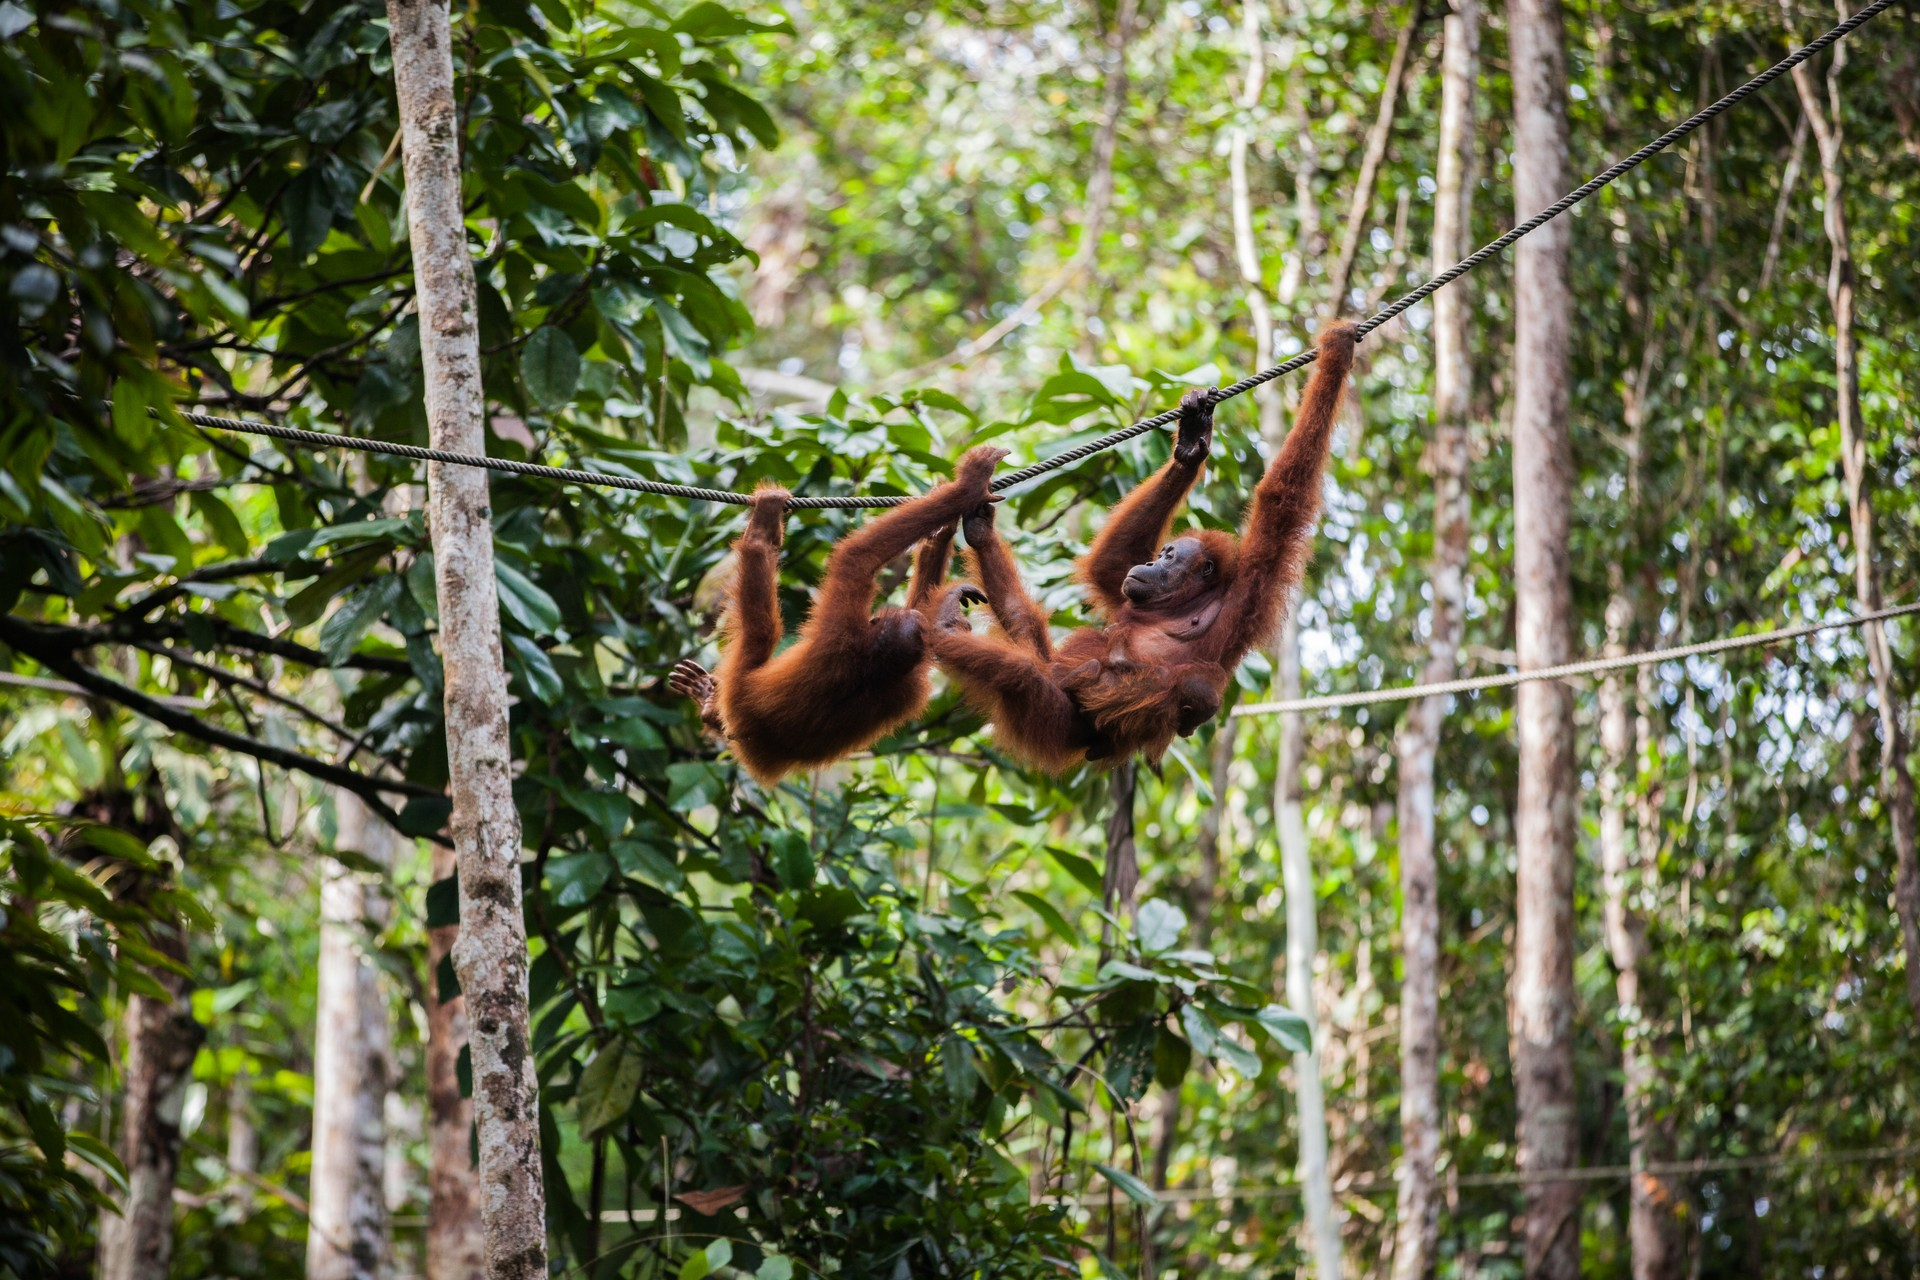 Two orangutans hang from a branch in the Gunung Leuser National Park